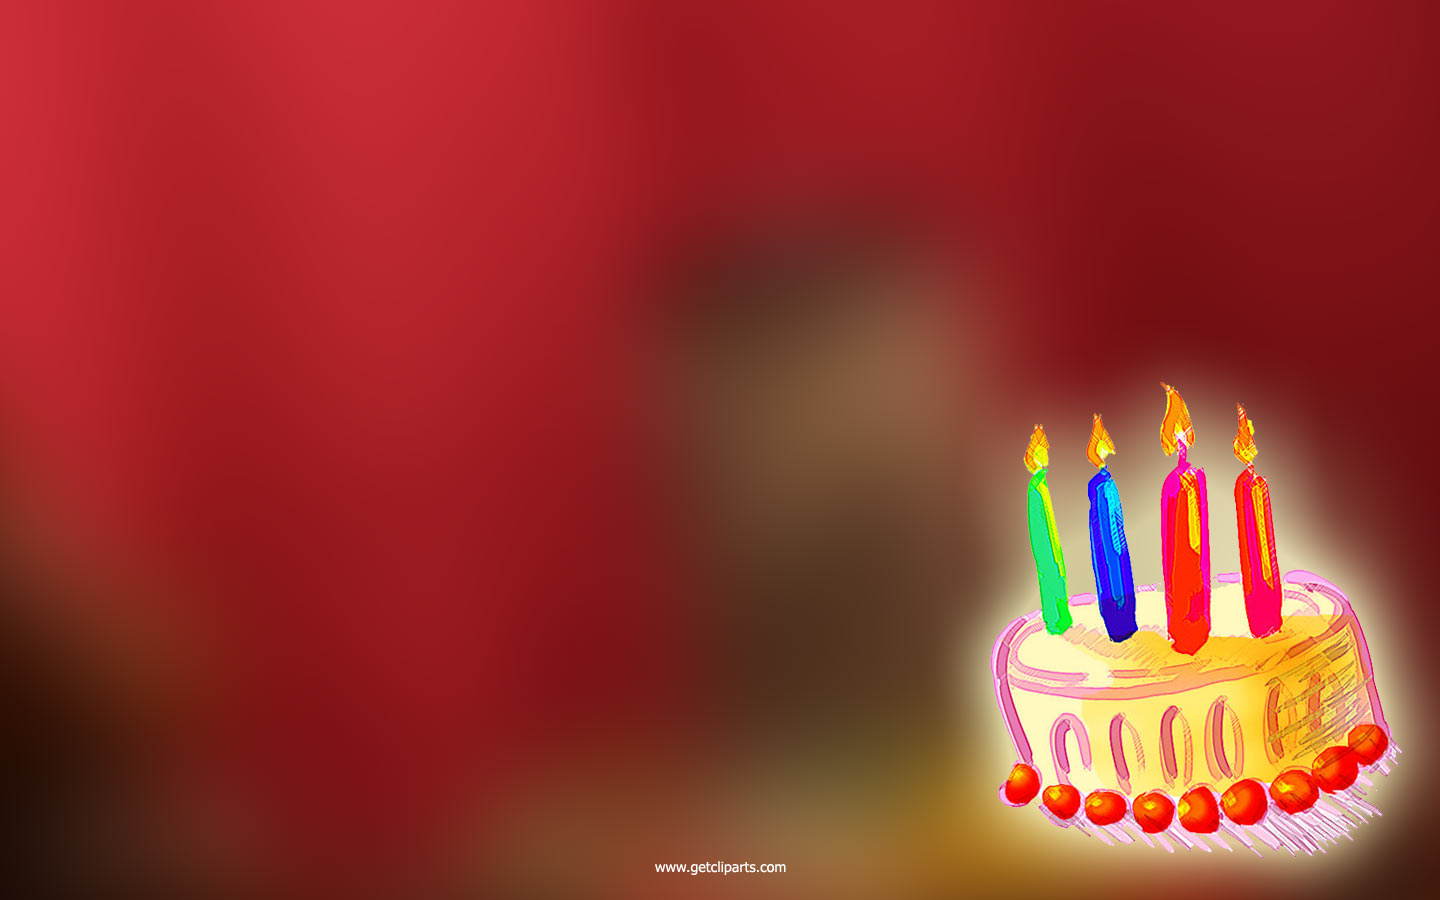 Birth Day PPT Backgrounds